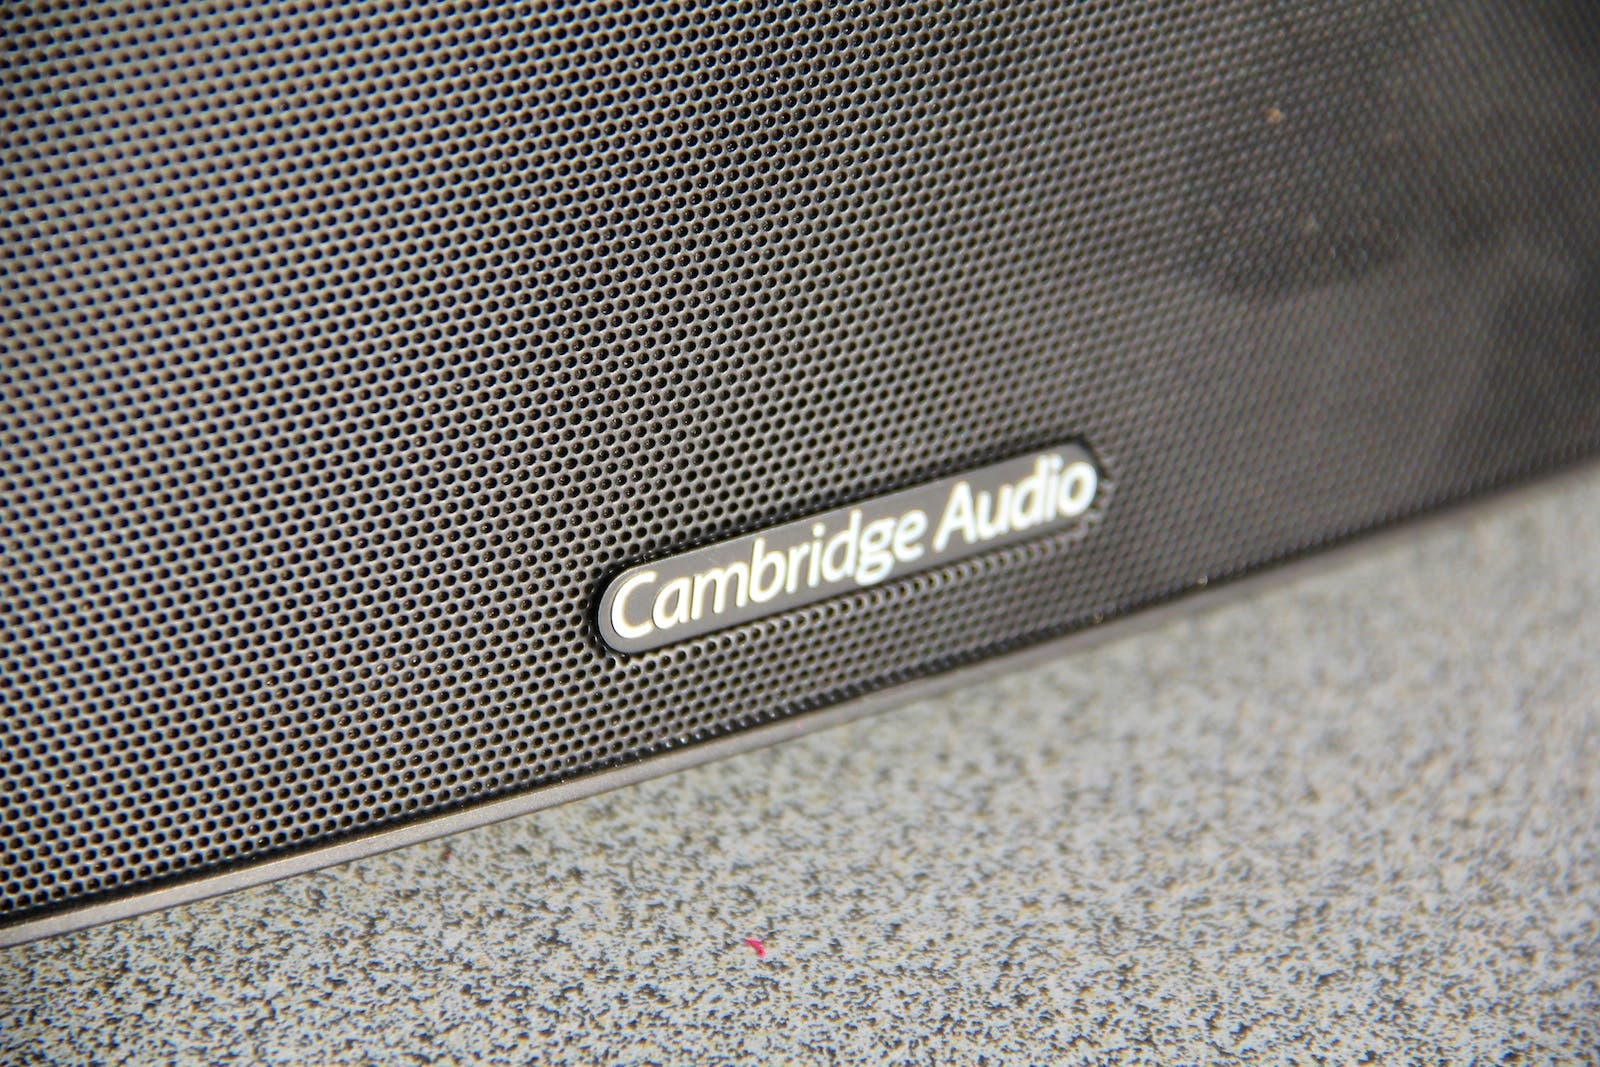 Cambridge Audio - Minx Go  7